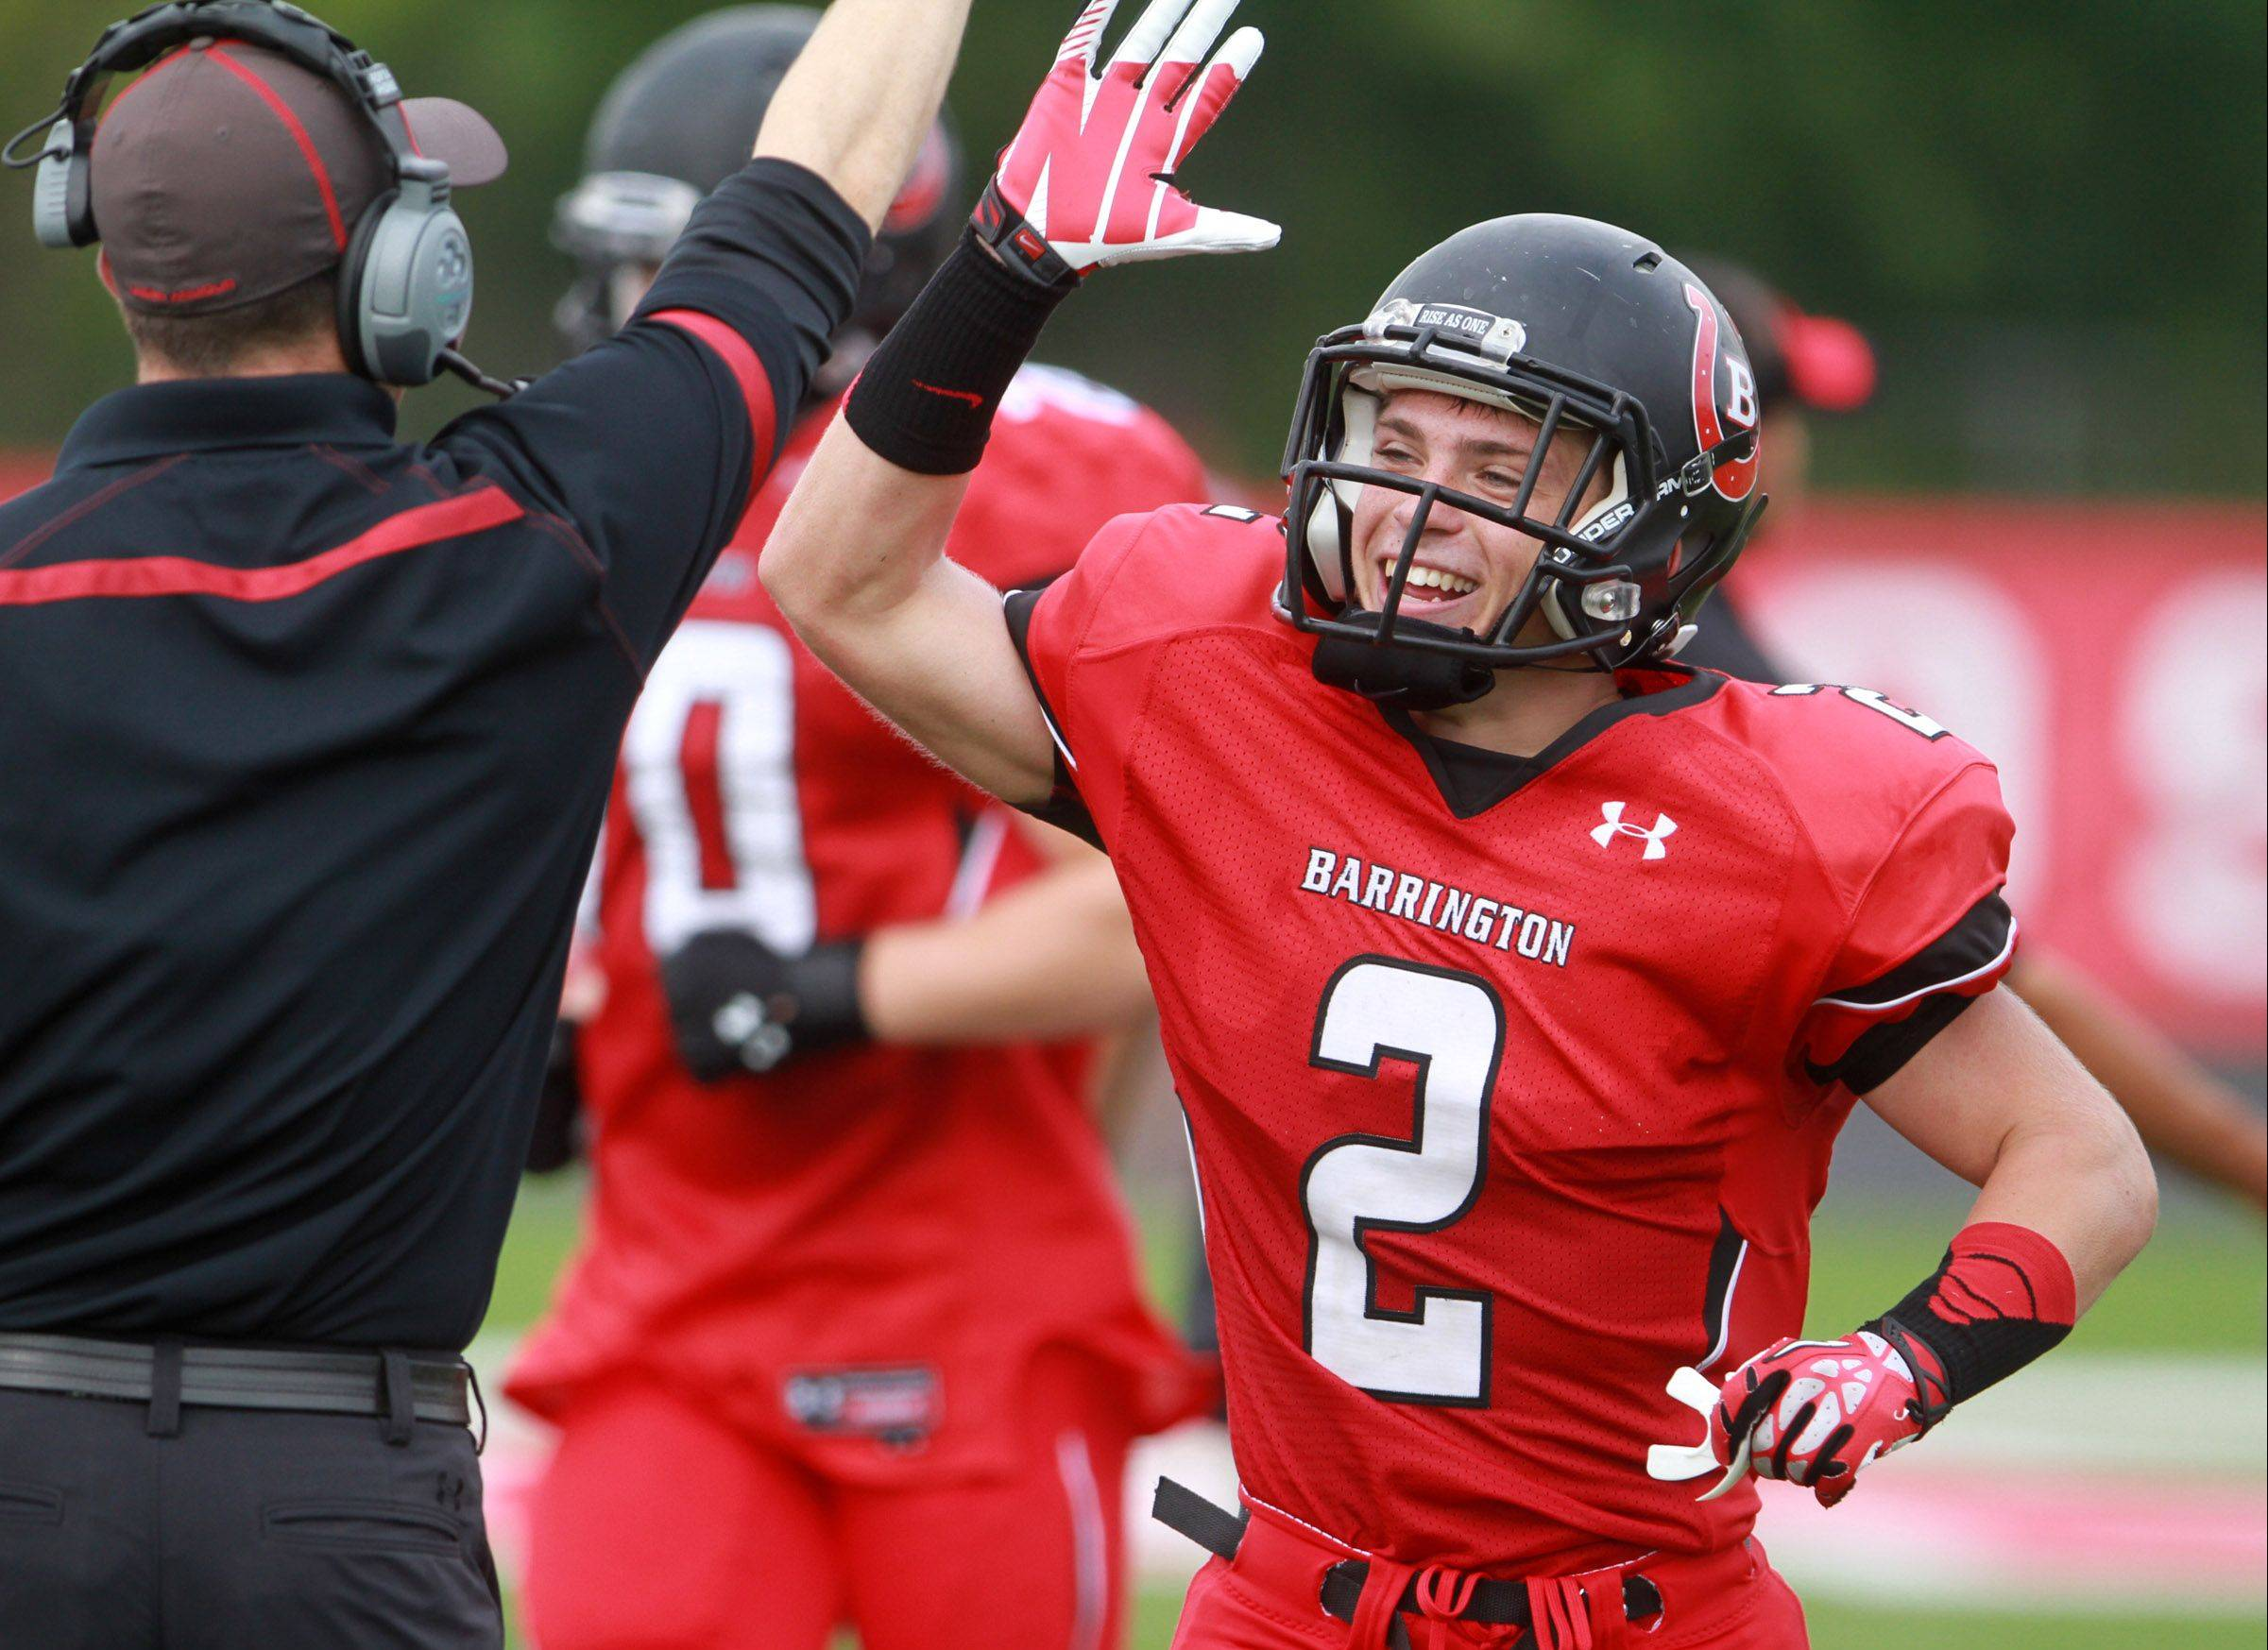 Barrington receiver Matt Moran celebrates a touchdown as he returns to the sideline against Fremd at Barrington on Saturday.